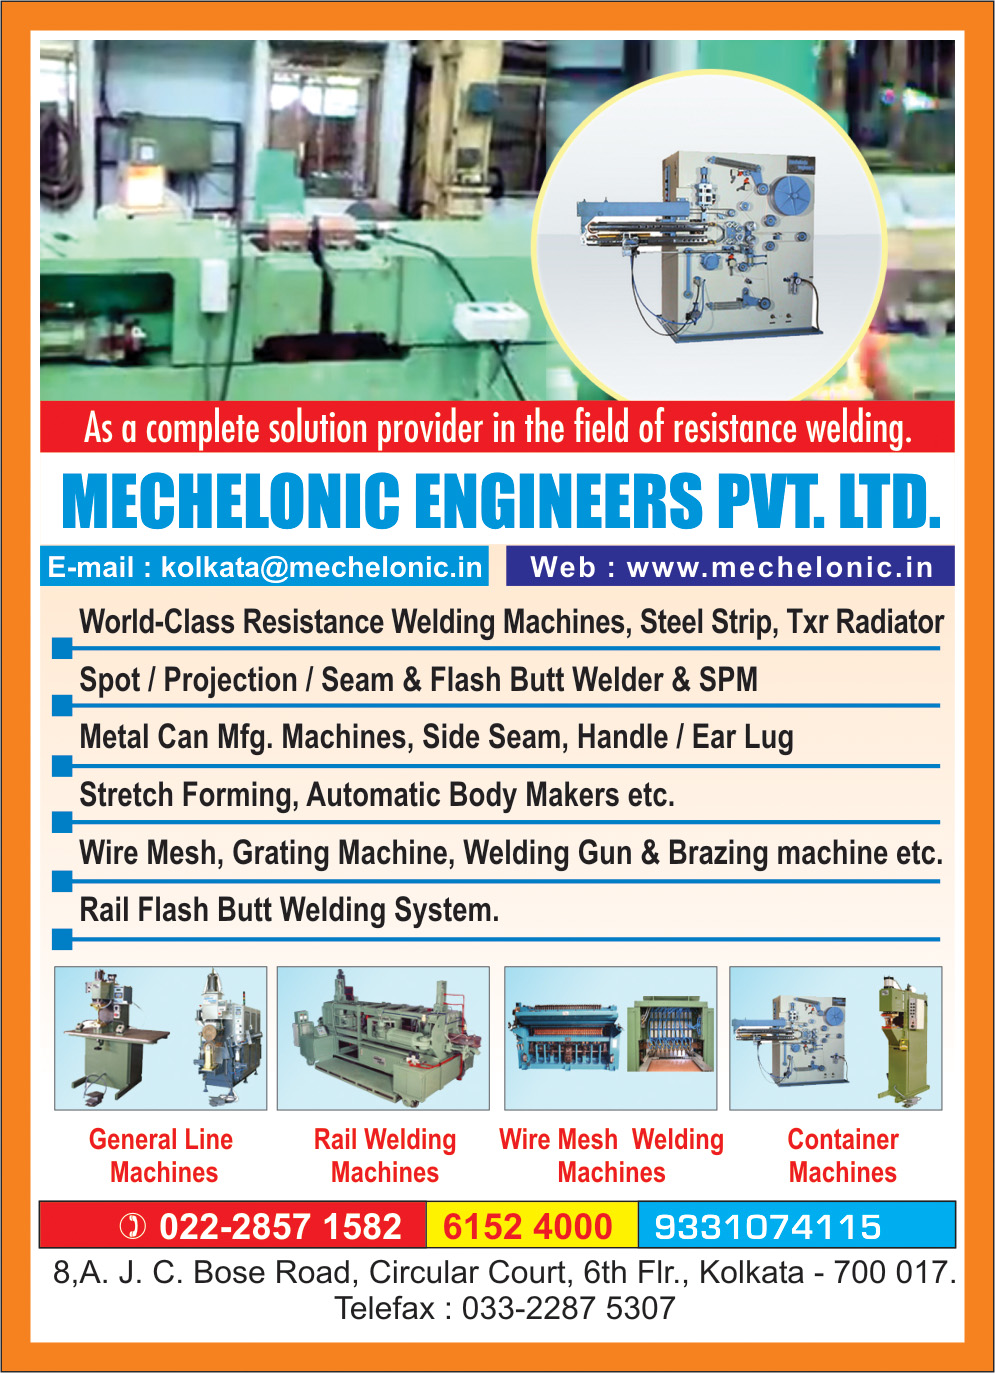 Welding Equipment, MECHELONIC ENGINEERS PVT LTD, Kolkata,  Yellow Pages, Kolkata, West Bengal